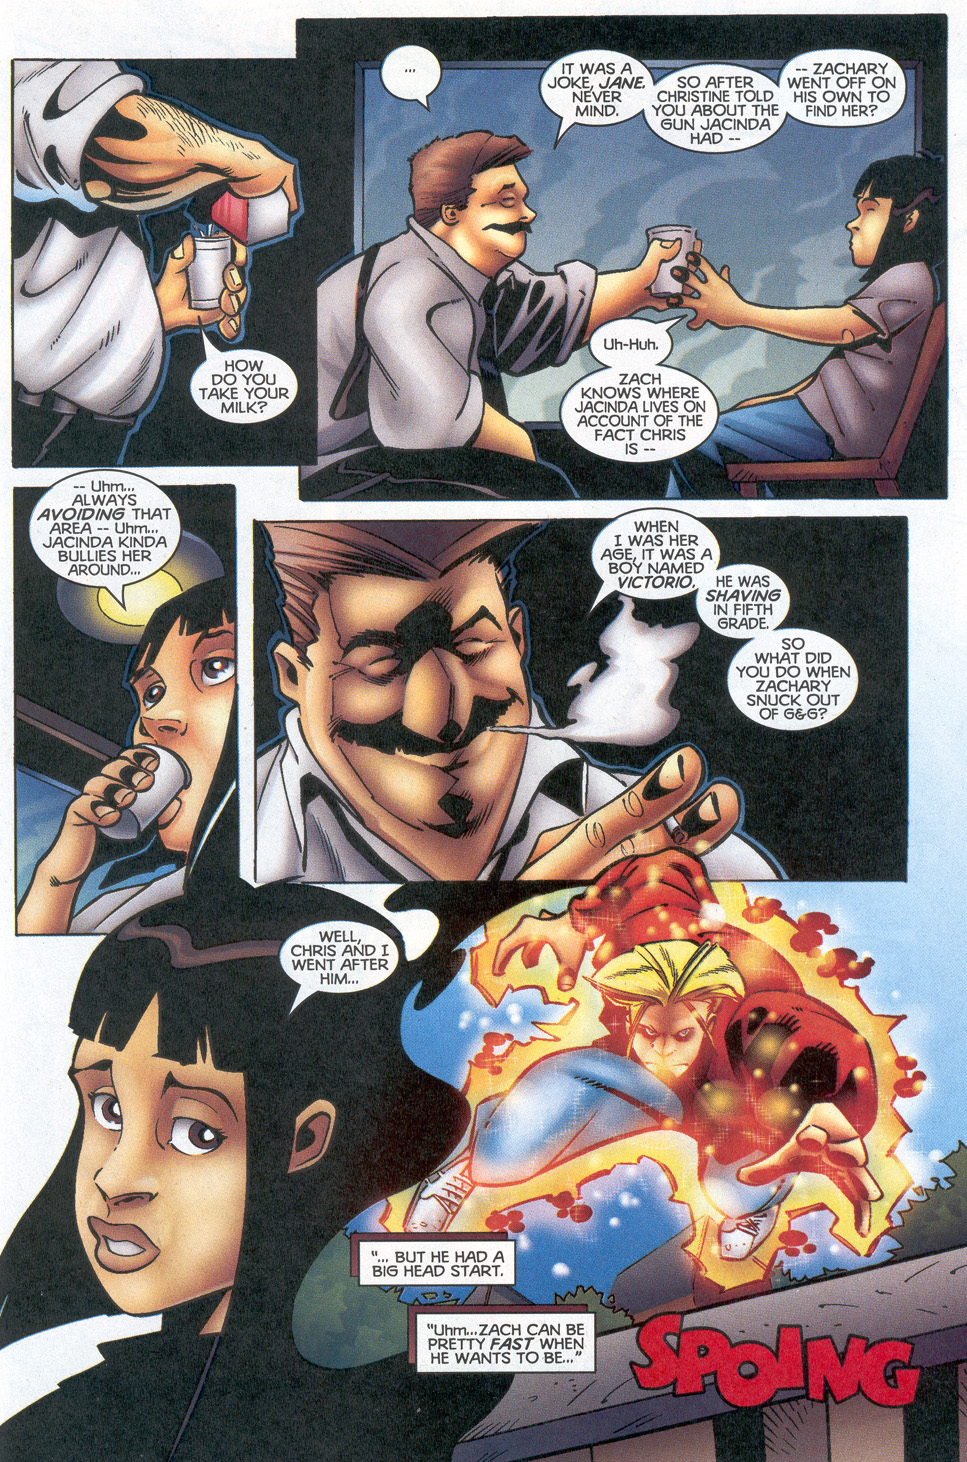 Read online Troublemakers comic -  Issue #12 - 17